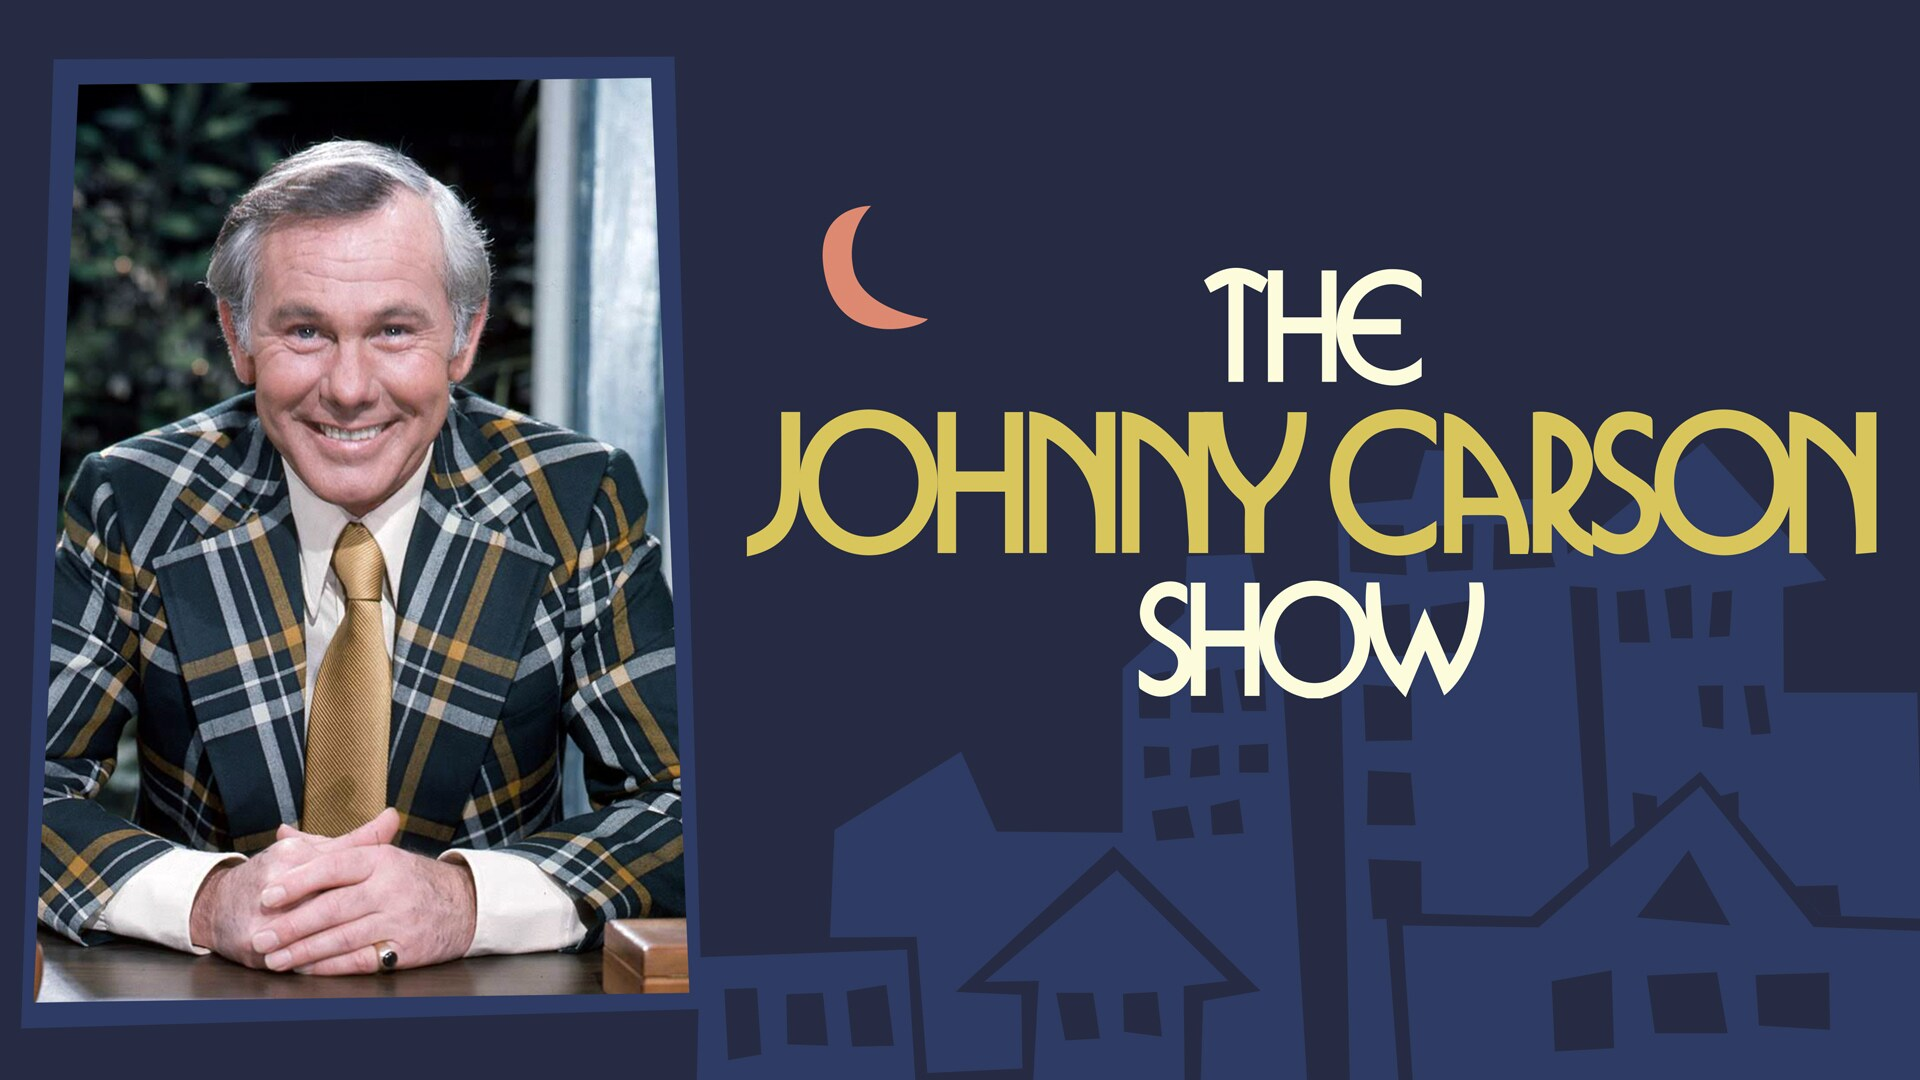 The Johnny Carson Show: Comic Legends Of The '50s - Jack Benny (7/20/73)